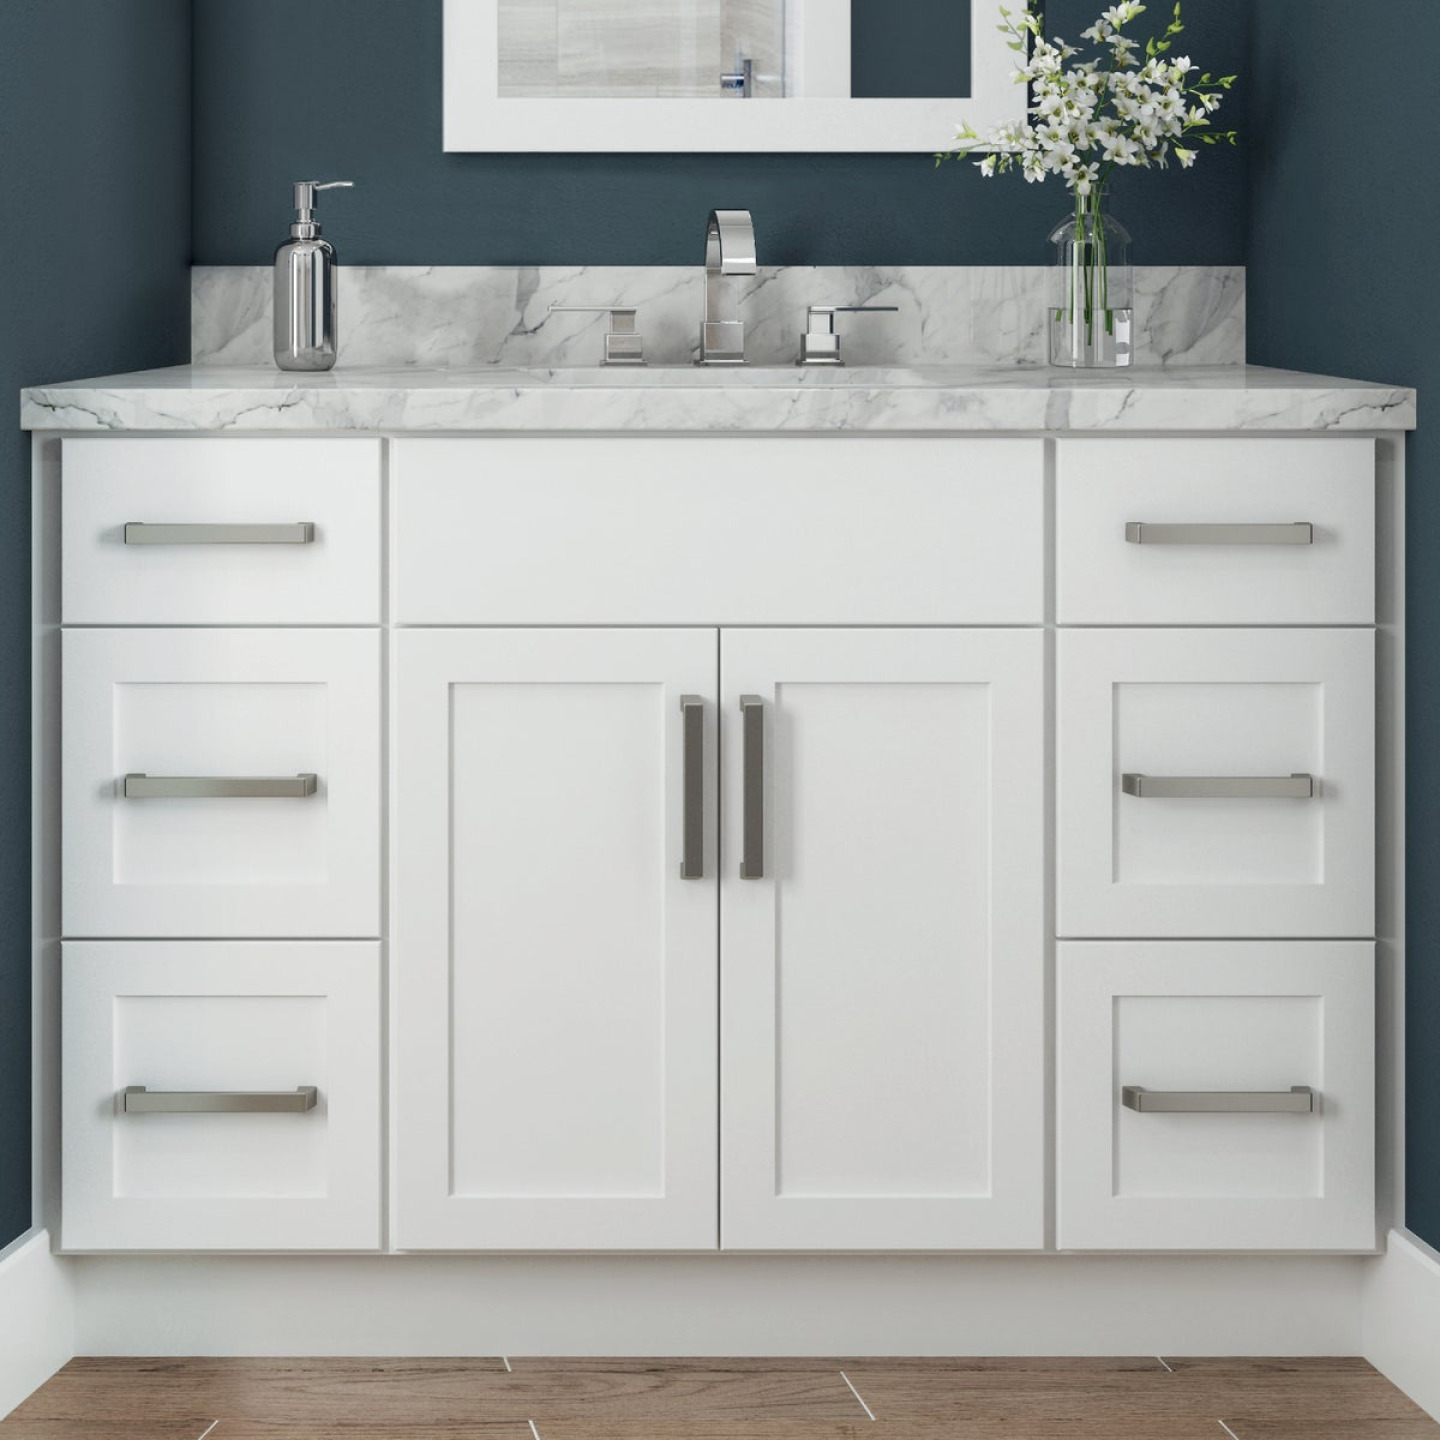 Continental Cabinets Andover Shaker 24 In. W x 34-1/2 In. H x 21 In. D White Vanity Base, 2 Door Image 2